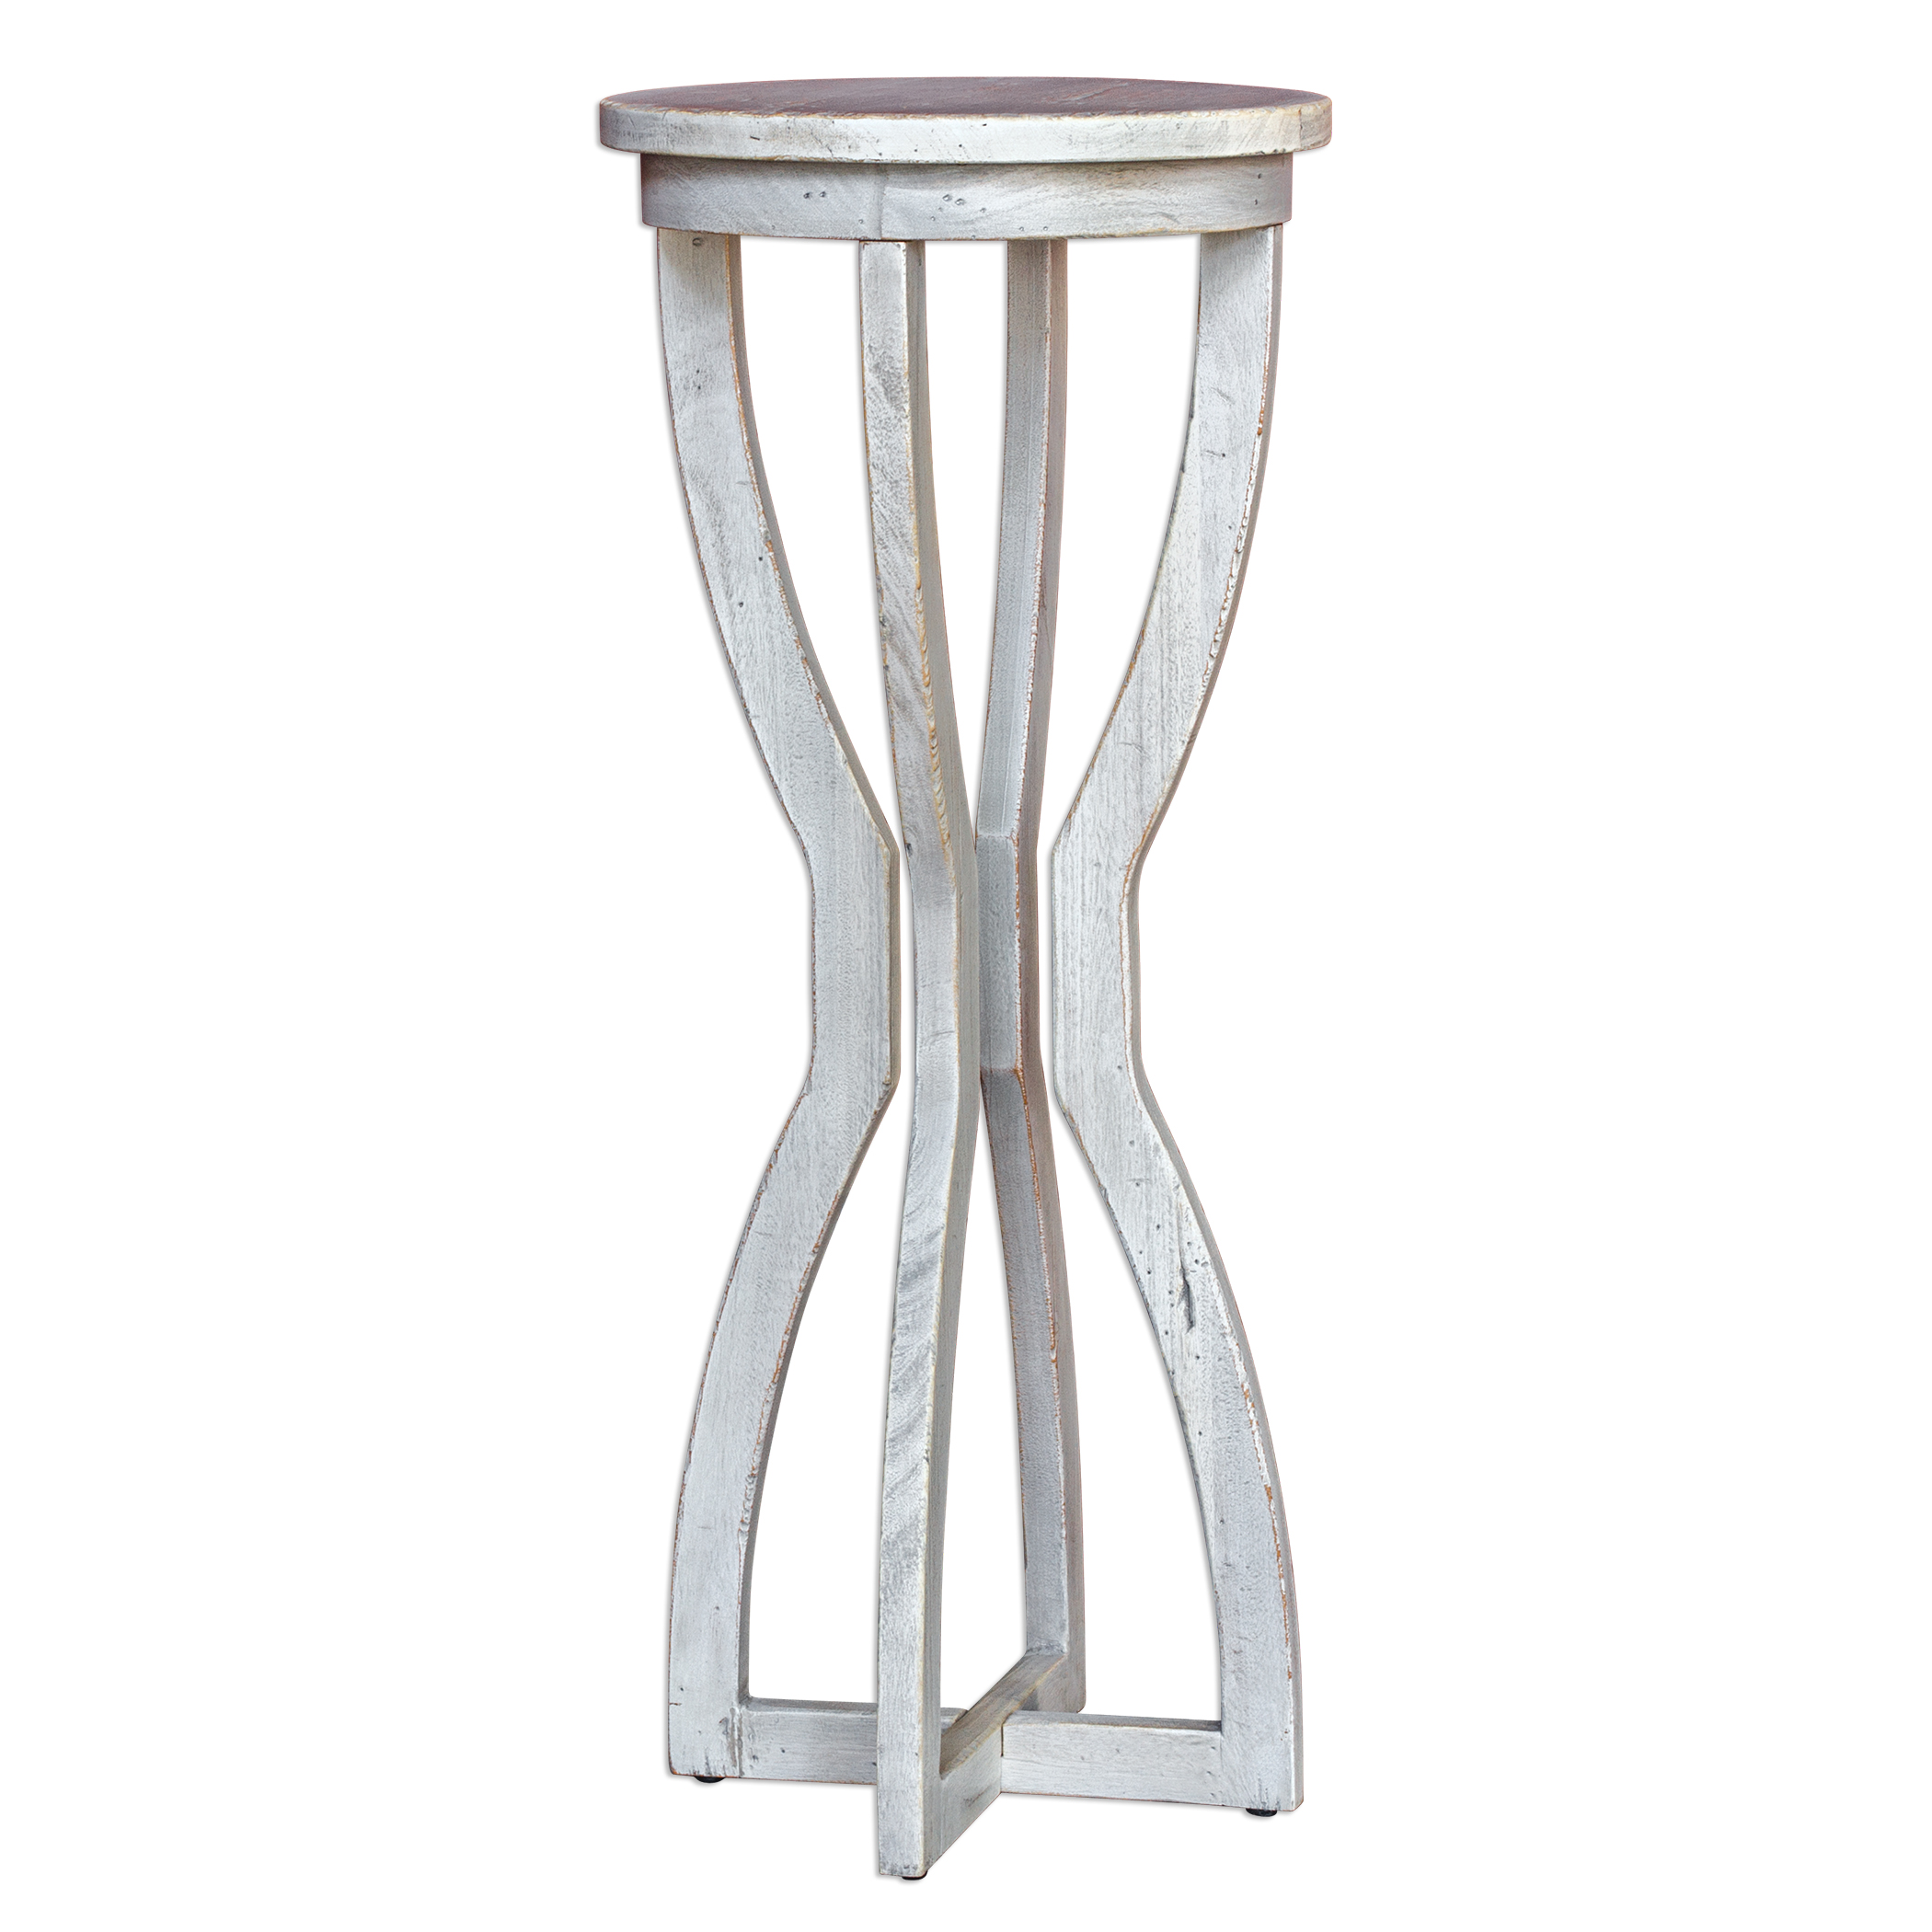 Uttermost Accent Furniture Noreena Wood Plant Stand - Item Number: 25714